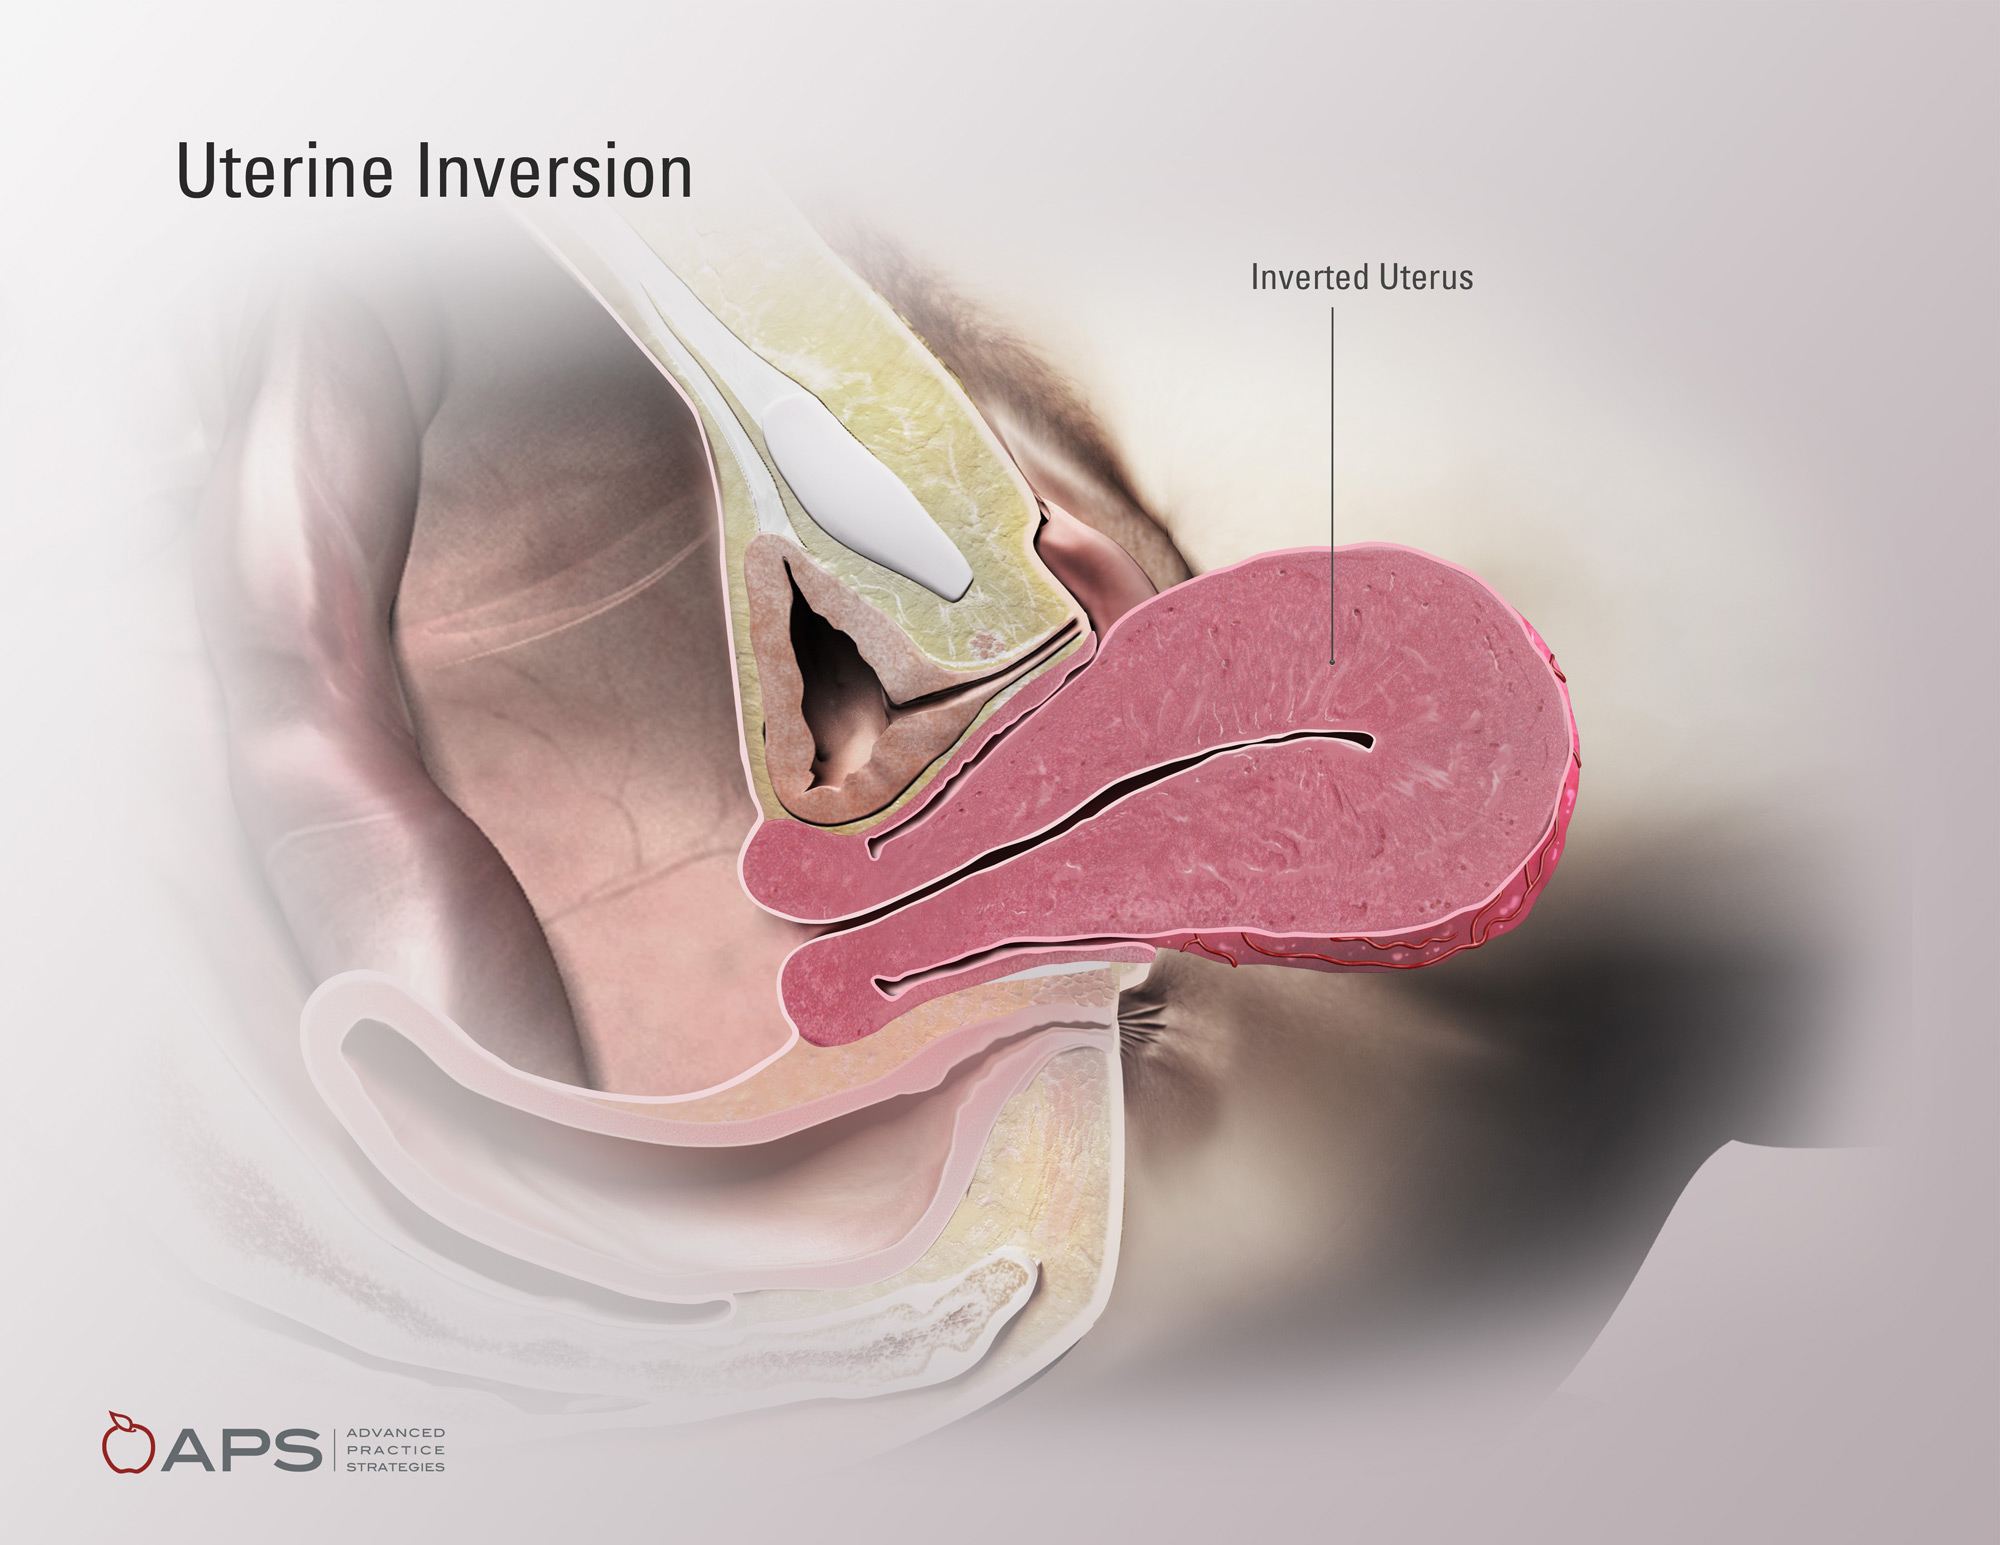 Uterine Inversion